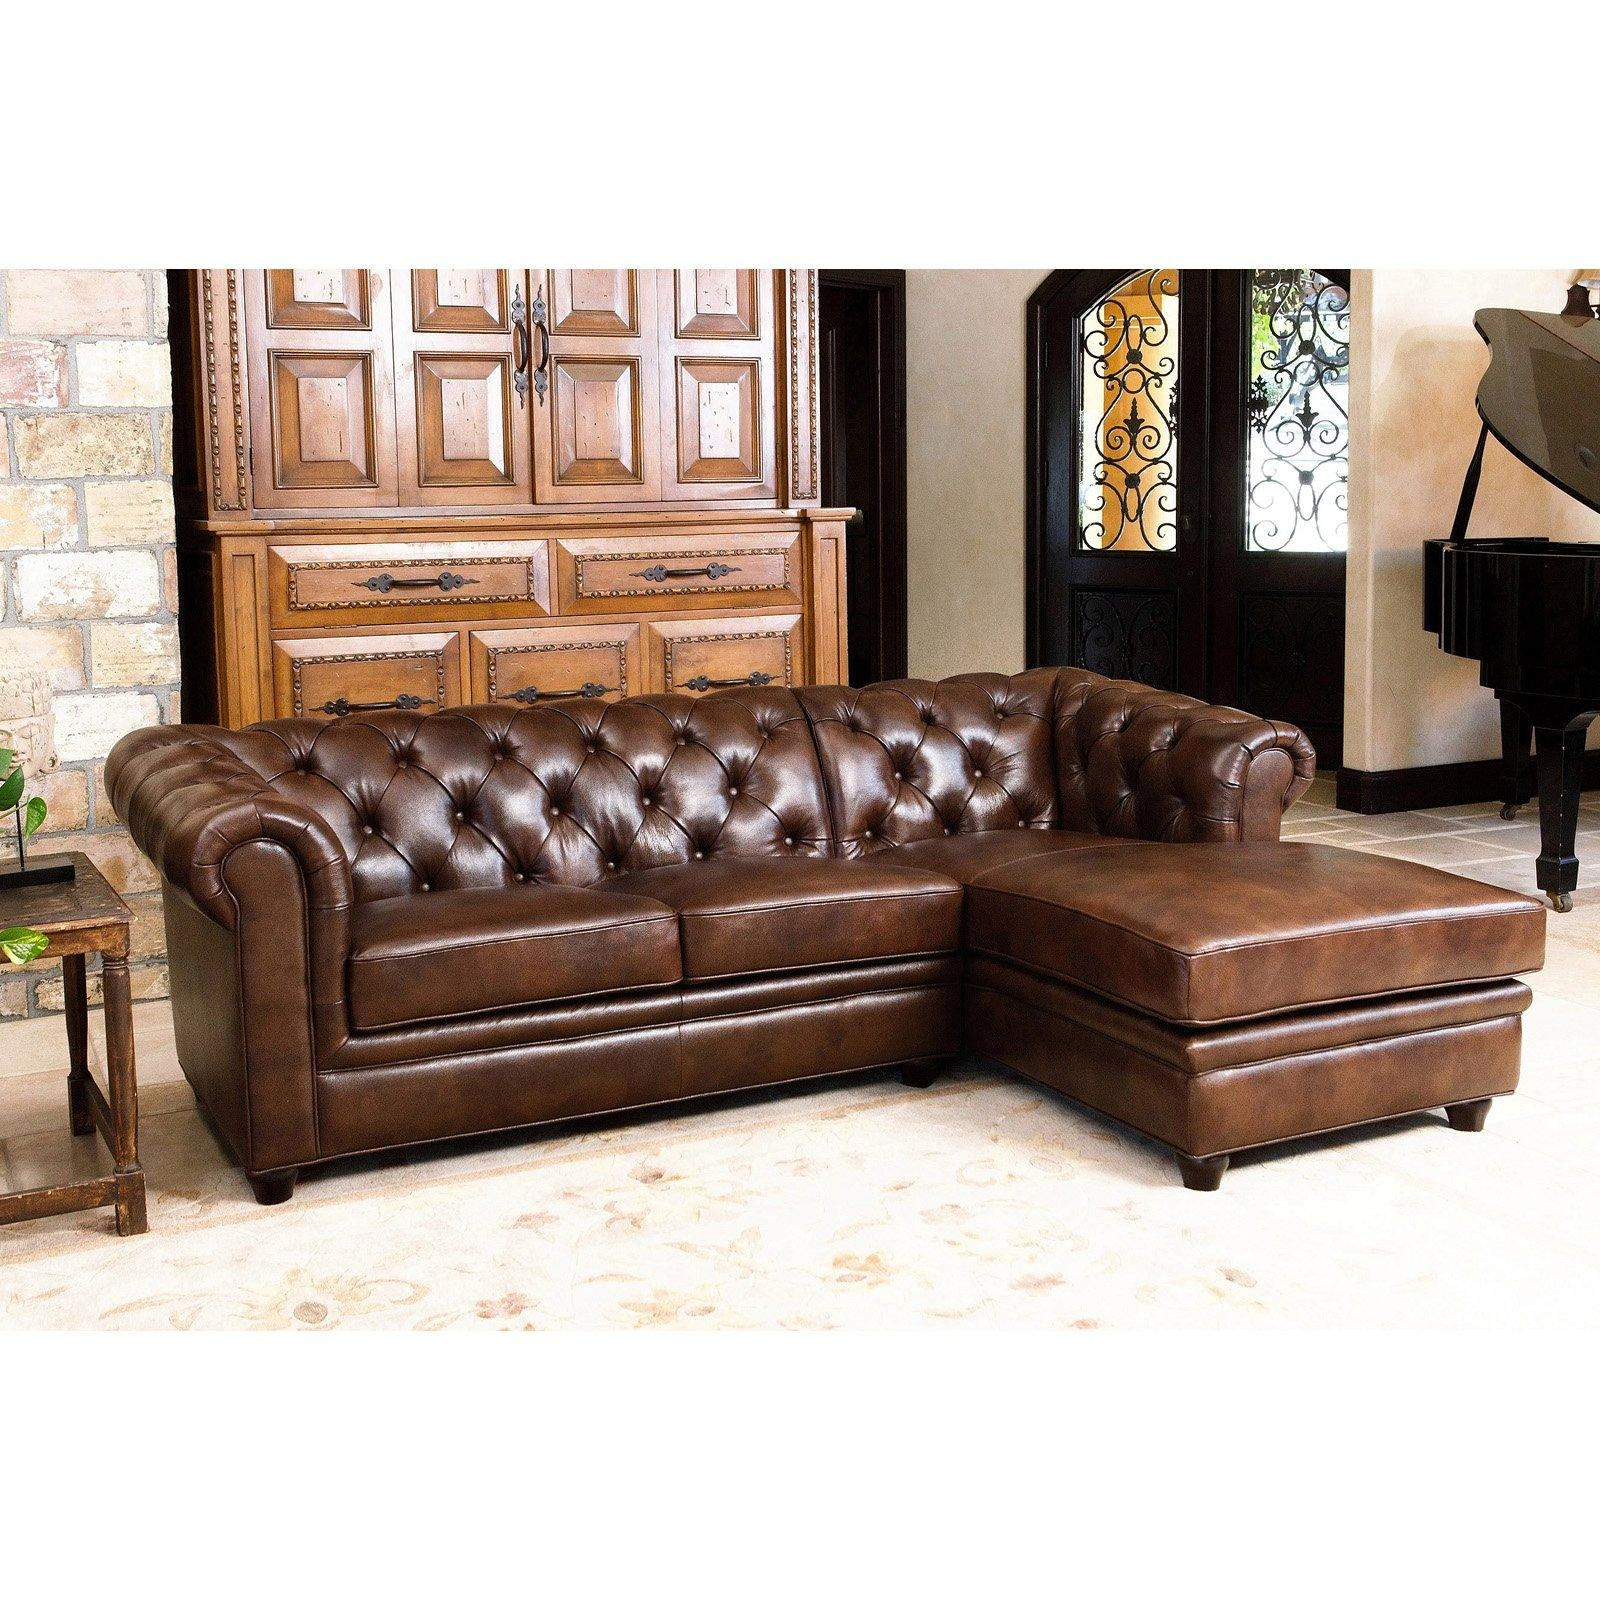 Abbyson Tuscan Top Grain Leather 3 Piece Sectional Sofa | Hayneedle With Regard To Abbyson Sectional Sofas (Image 11 of 20)